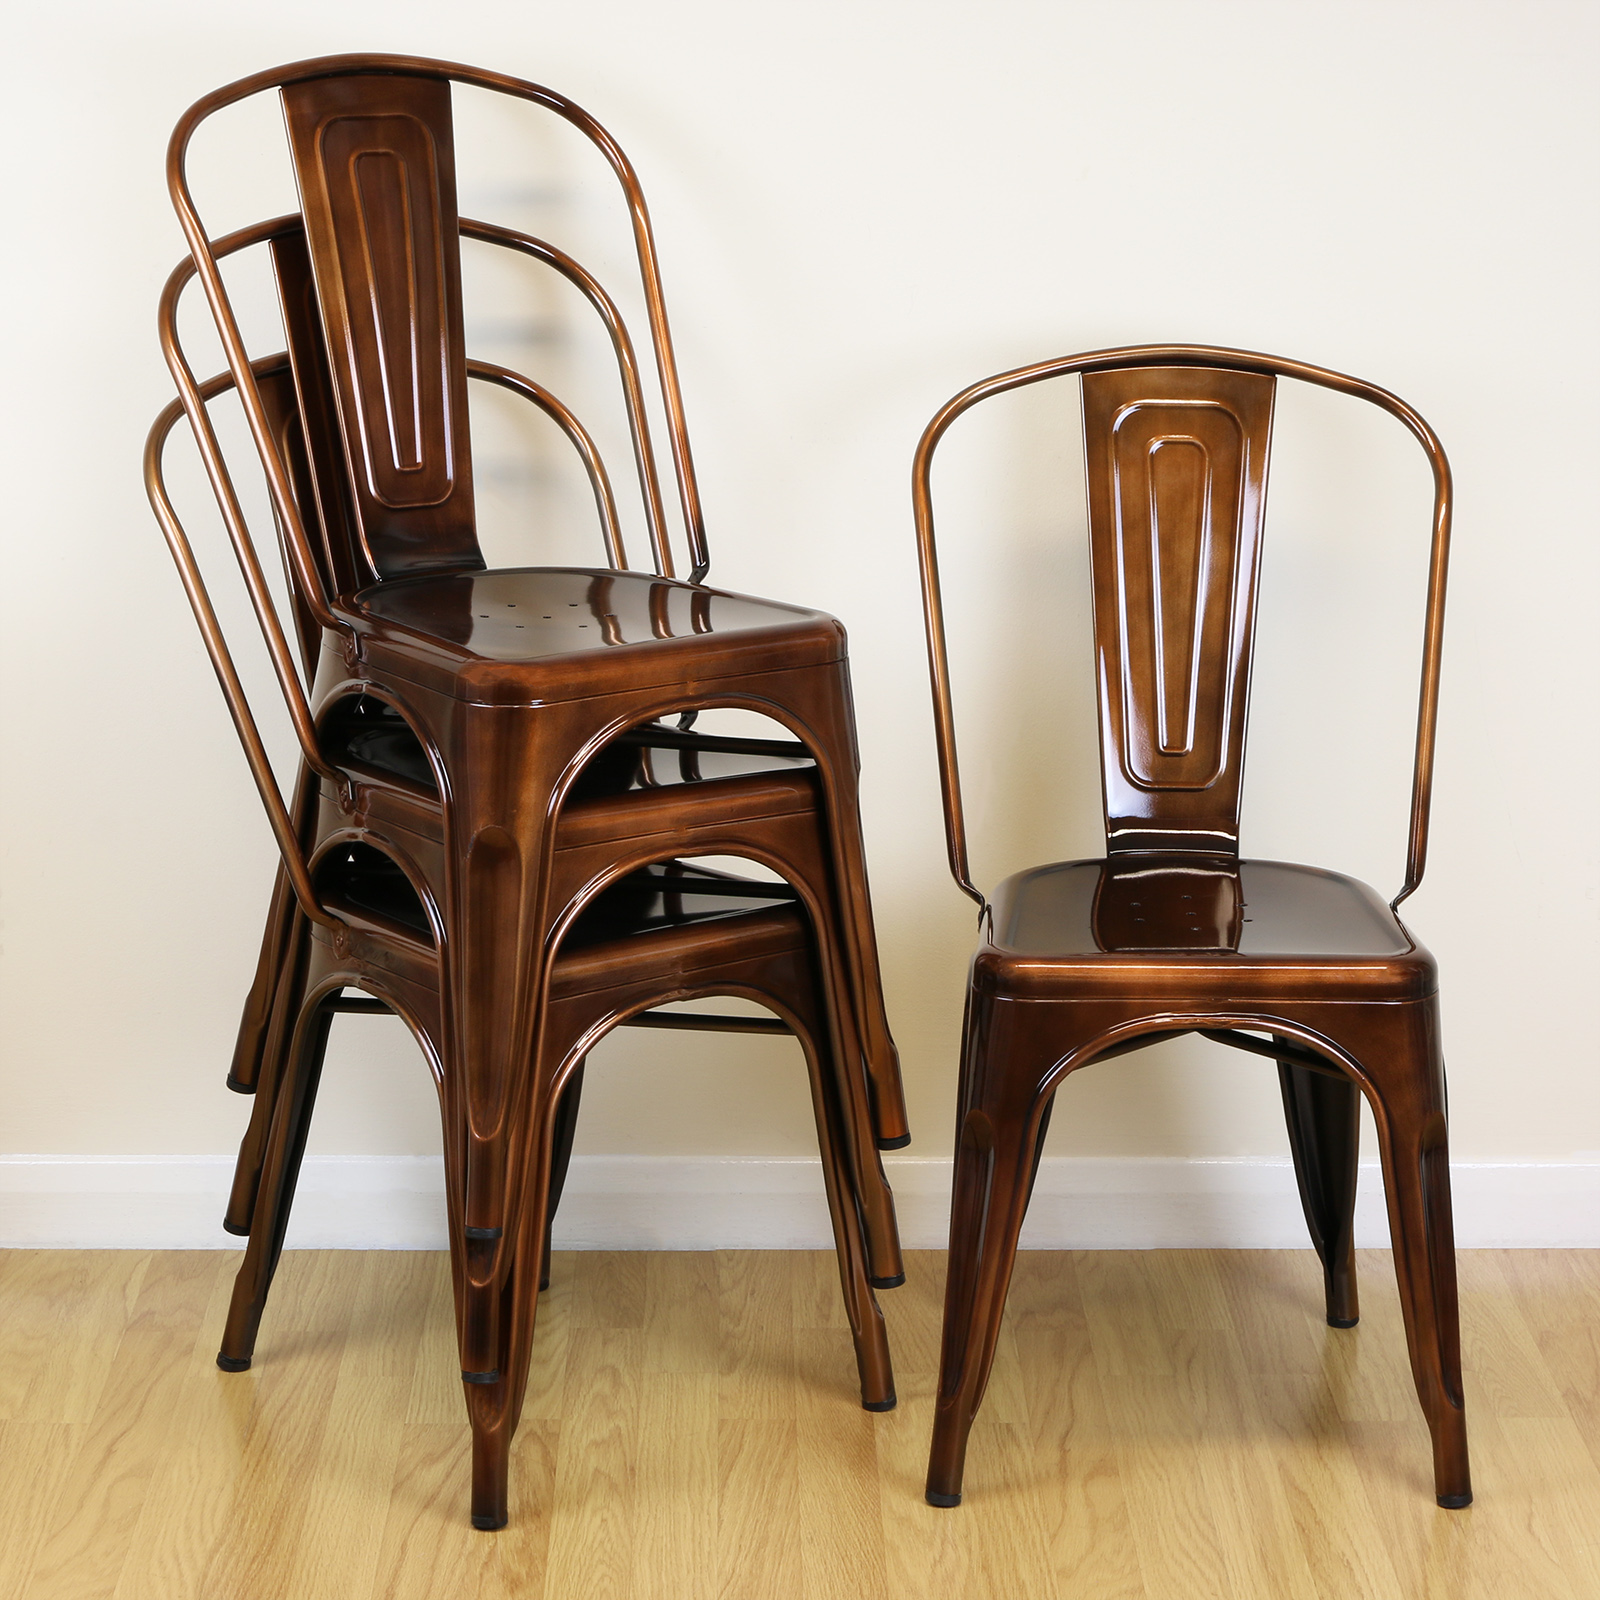 Set of 4 Copper Metal Industrial Dining Chairs Kitchen ...